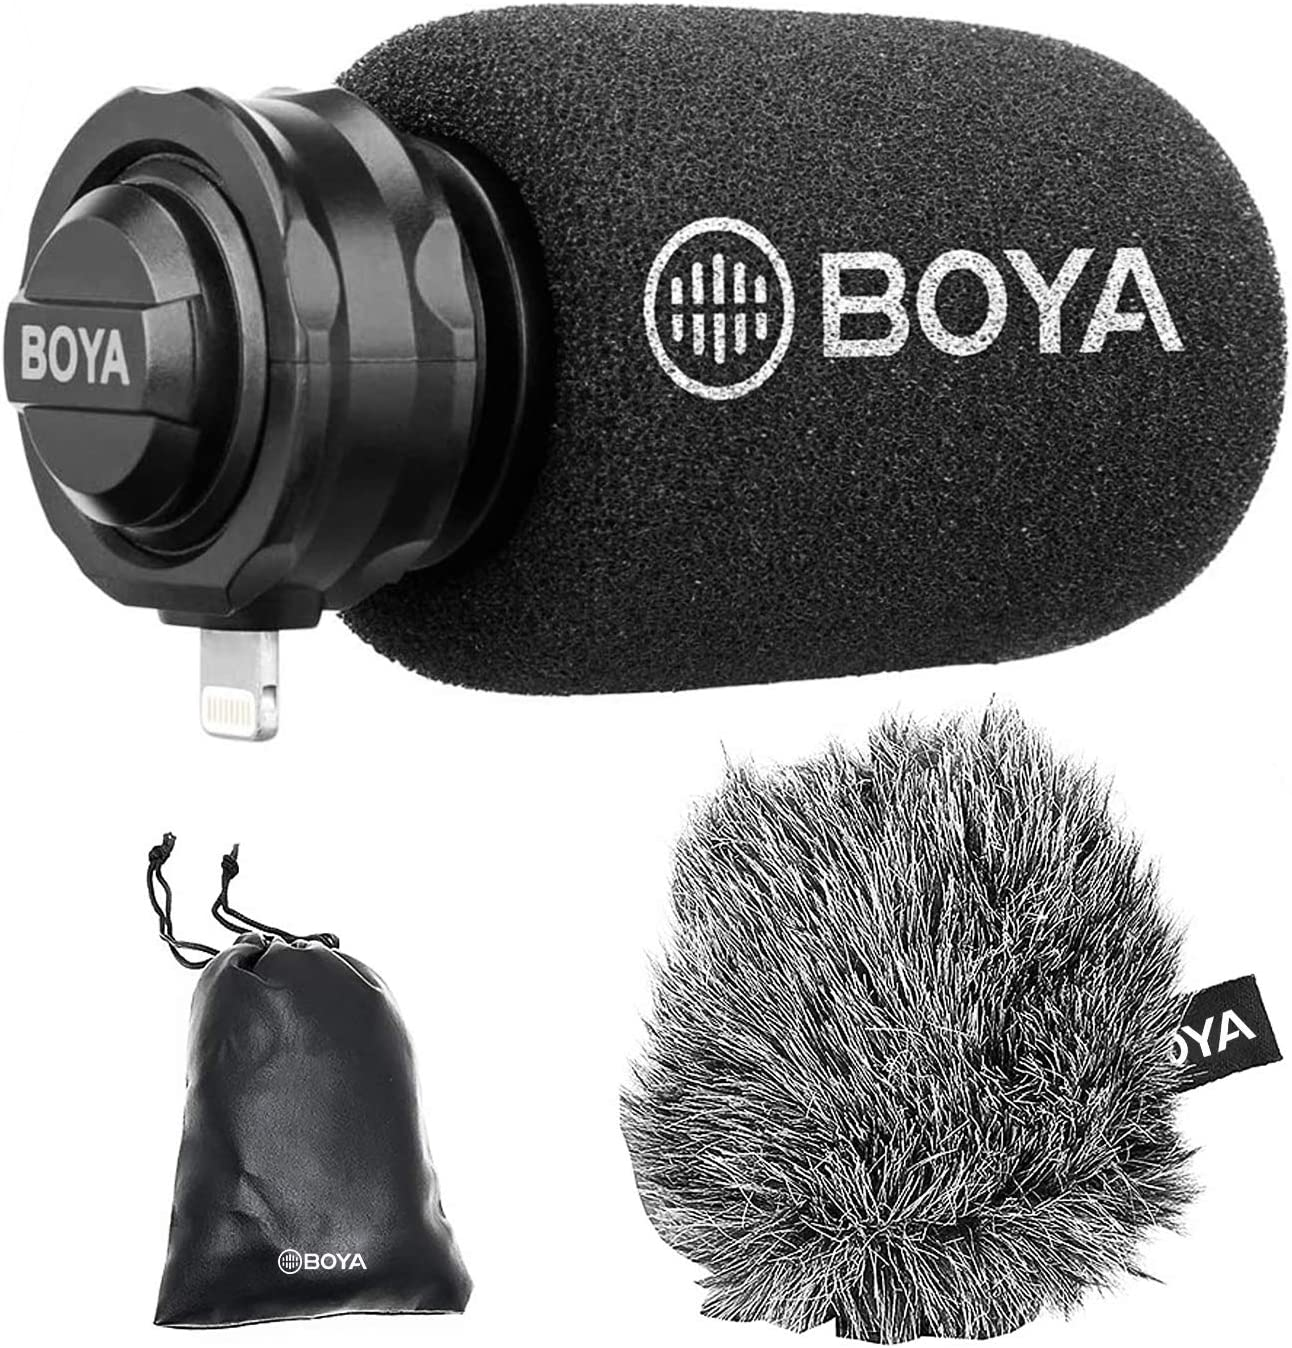 iPhone Lightning Plug & Play Microphone,BOYA DM200 Cardioid Condenser Microphone with MFI Certified Lightning Port iPhone Apple Mic Compatible with iPhone iPad iPod Touch iOS Device